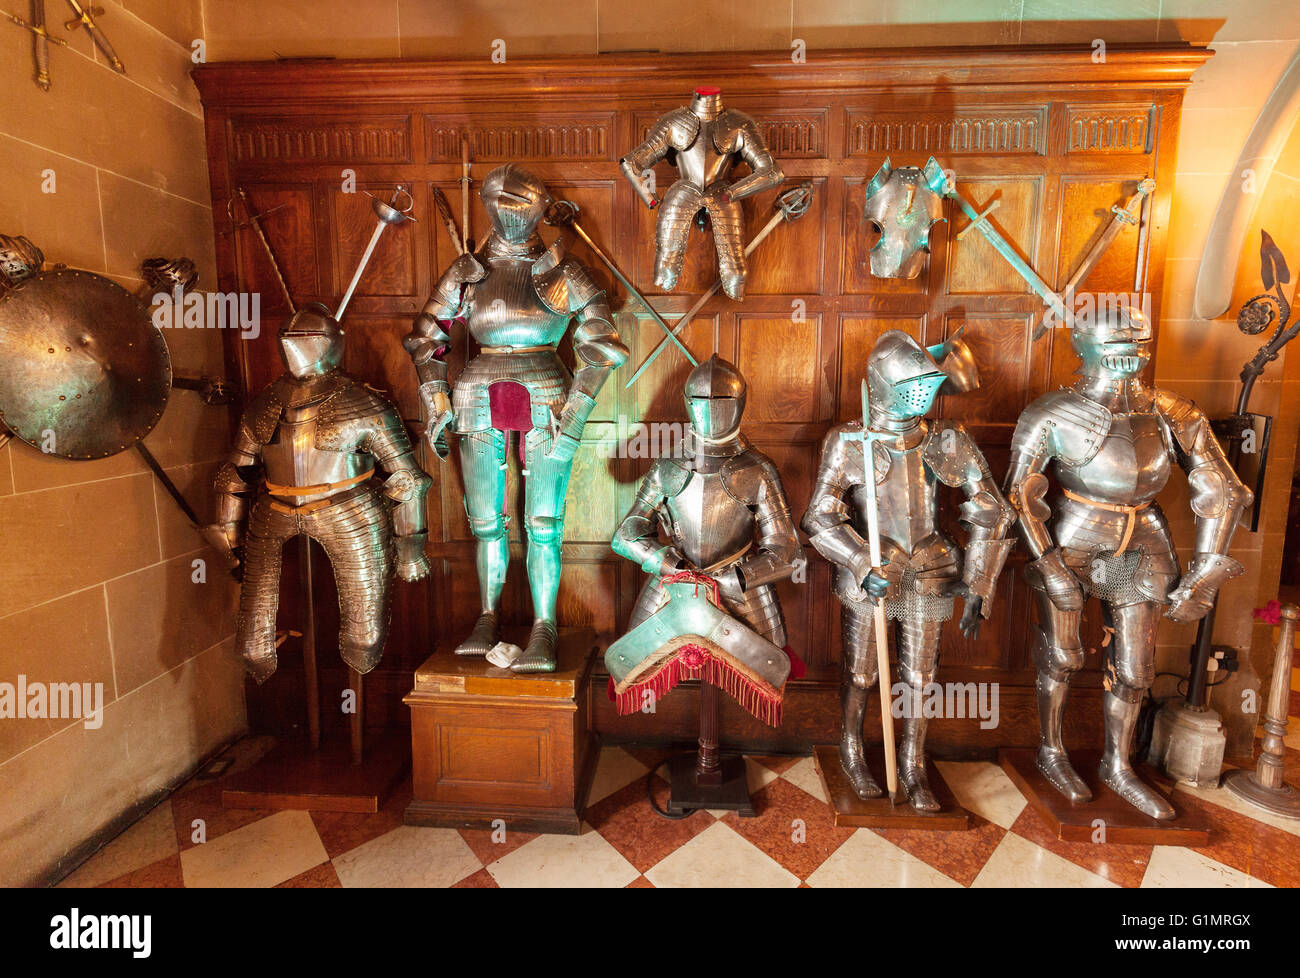 Medieval suits of armour on display, Warwick castle interior, Warwick, Warwickshire England UK - Stock Image